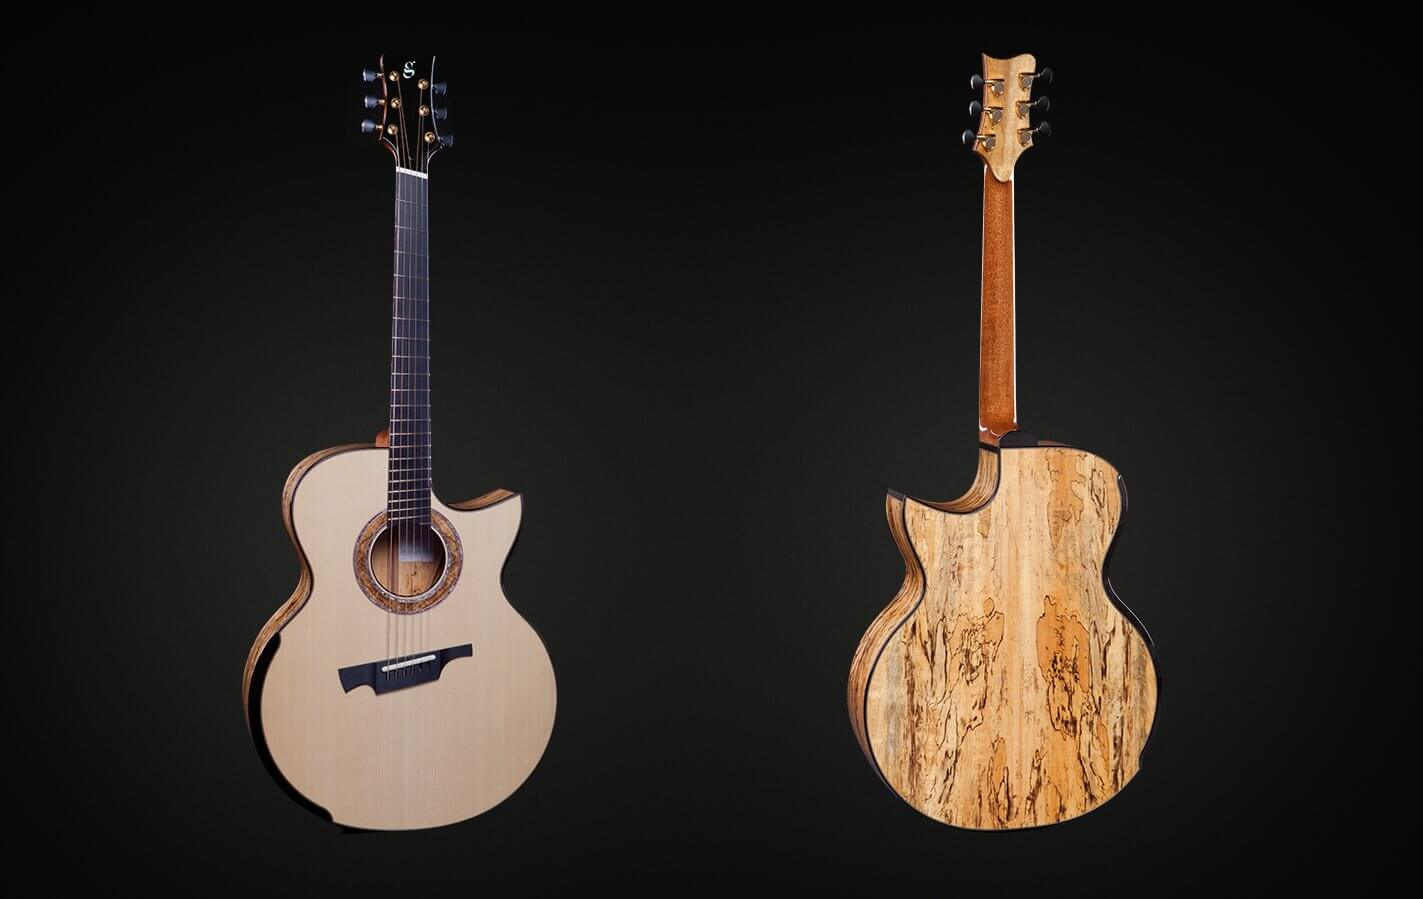 Greenfield Guitars | Fine handmade Acoustic Guitars Model G4, Adirondack red spruce, spalted Manchinga, laskin arm rest, Florentine cutaway, DADGAD fanned frets